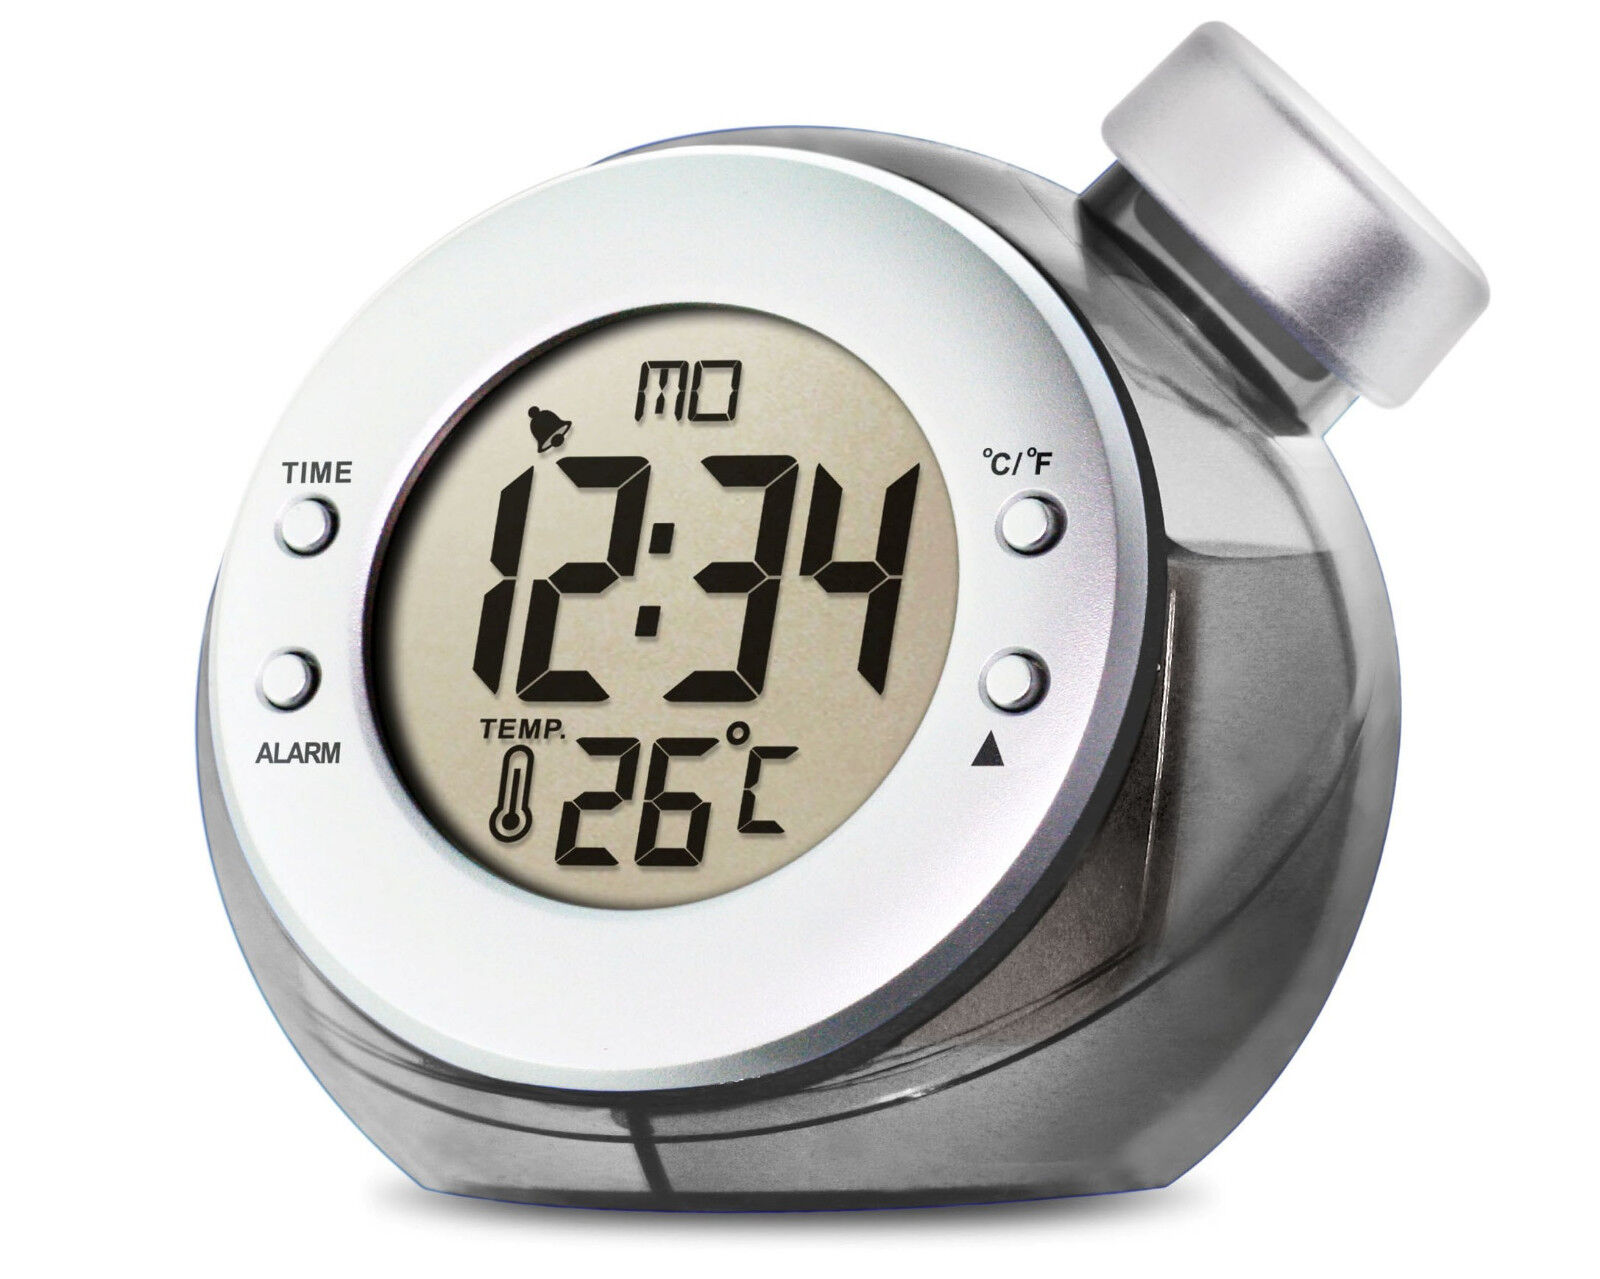 Water Powered LCD ALARM CLOCK Thermometer Calendar H2O Power energised by water